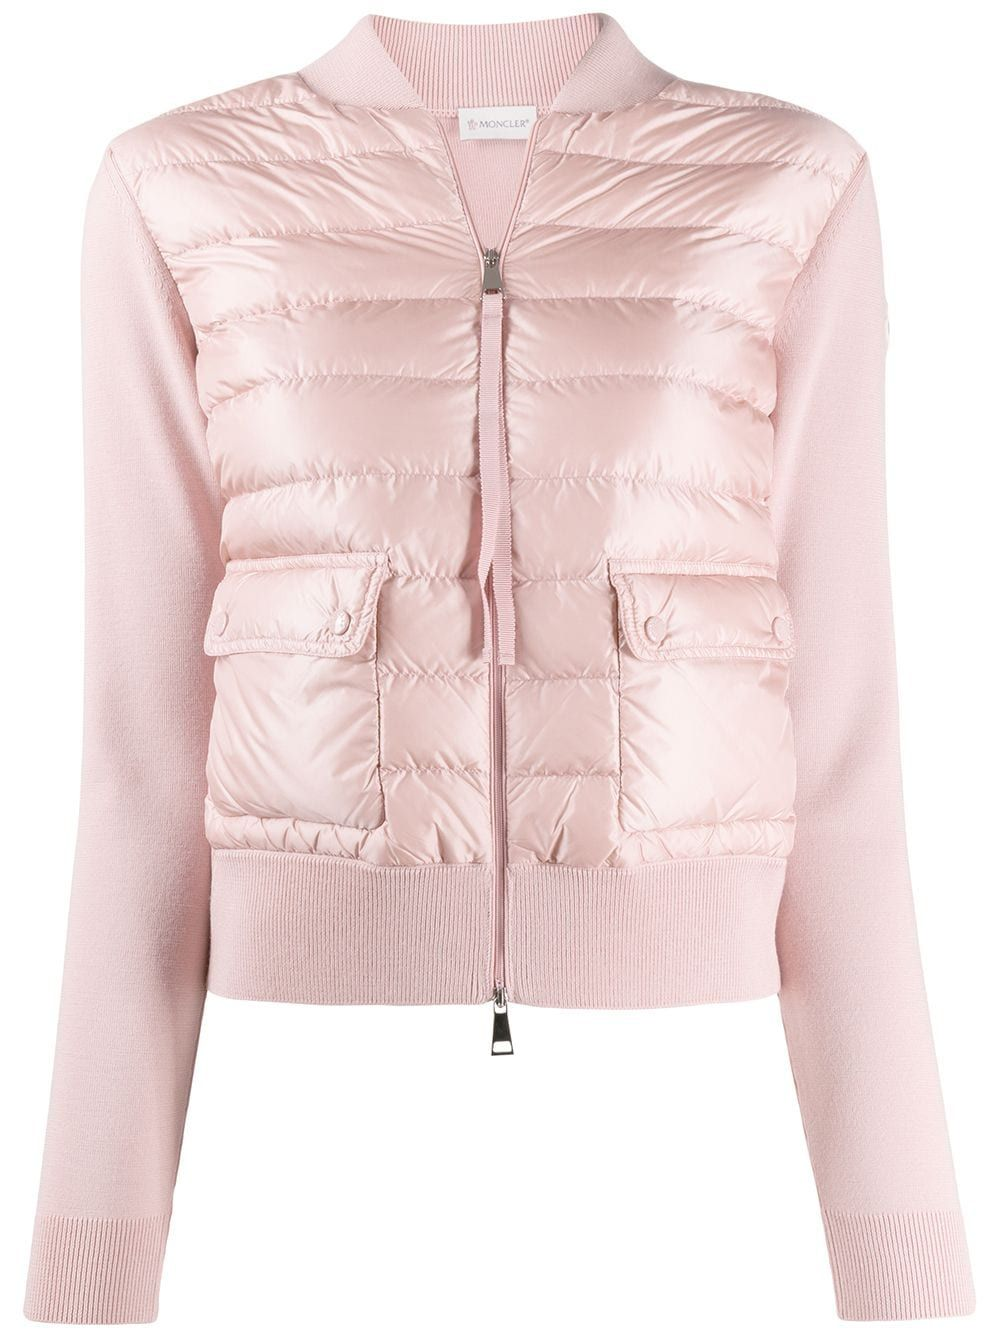 Moncler Slim Fit Puffer Jacket Farfetch In 2020 Jackets Puffer Jackets Stylist Outfit [ 1334 x 1000 Pixel ]